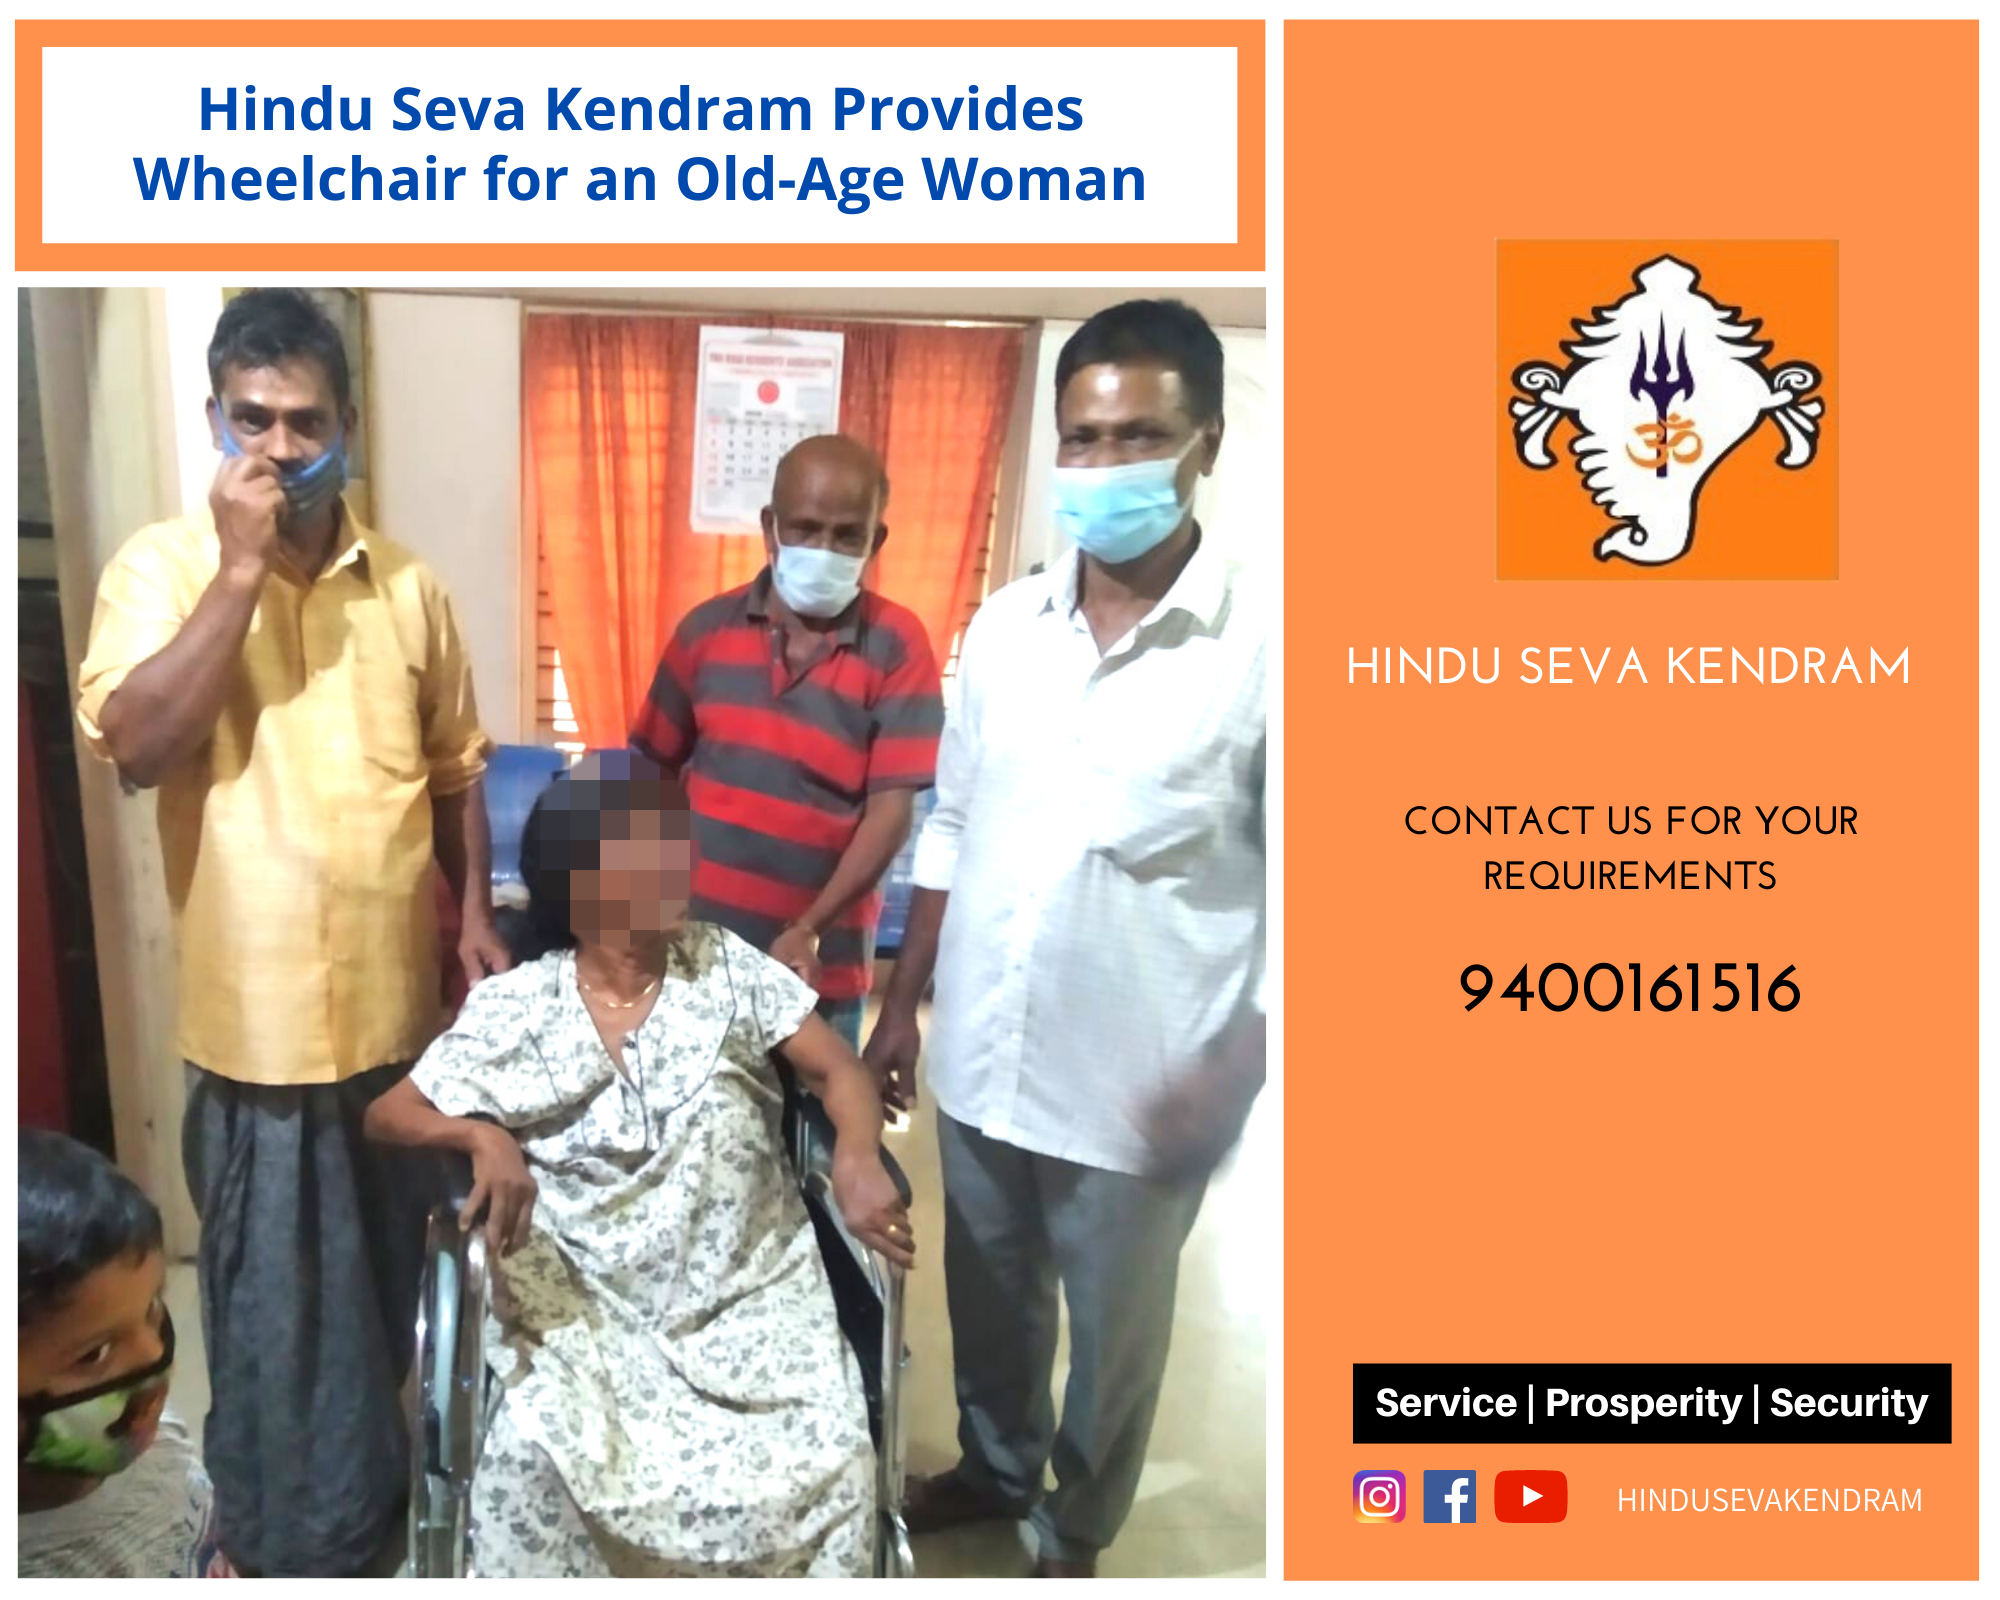 Hindu Seva Kendram Provides Wheelchair for an Old-Age Woman